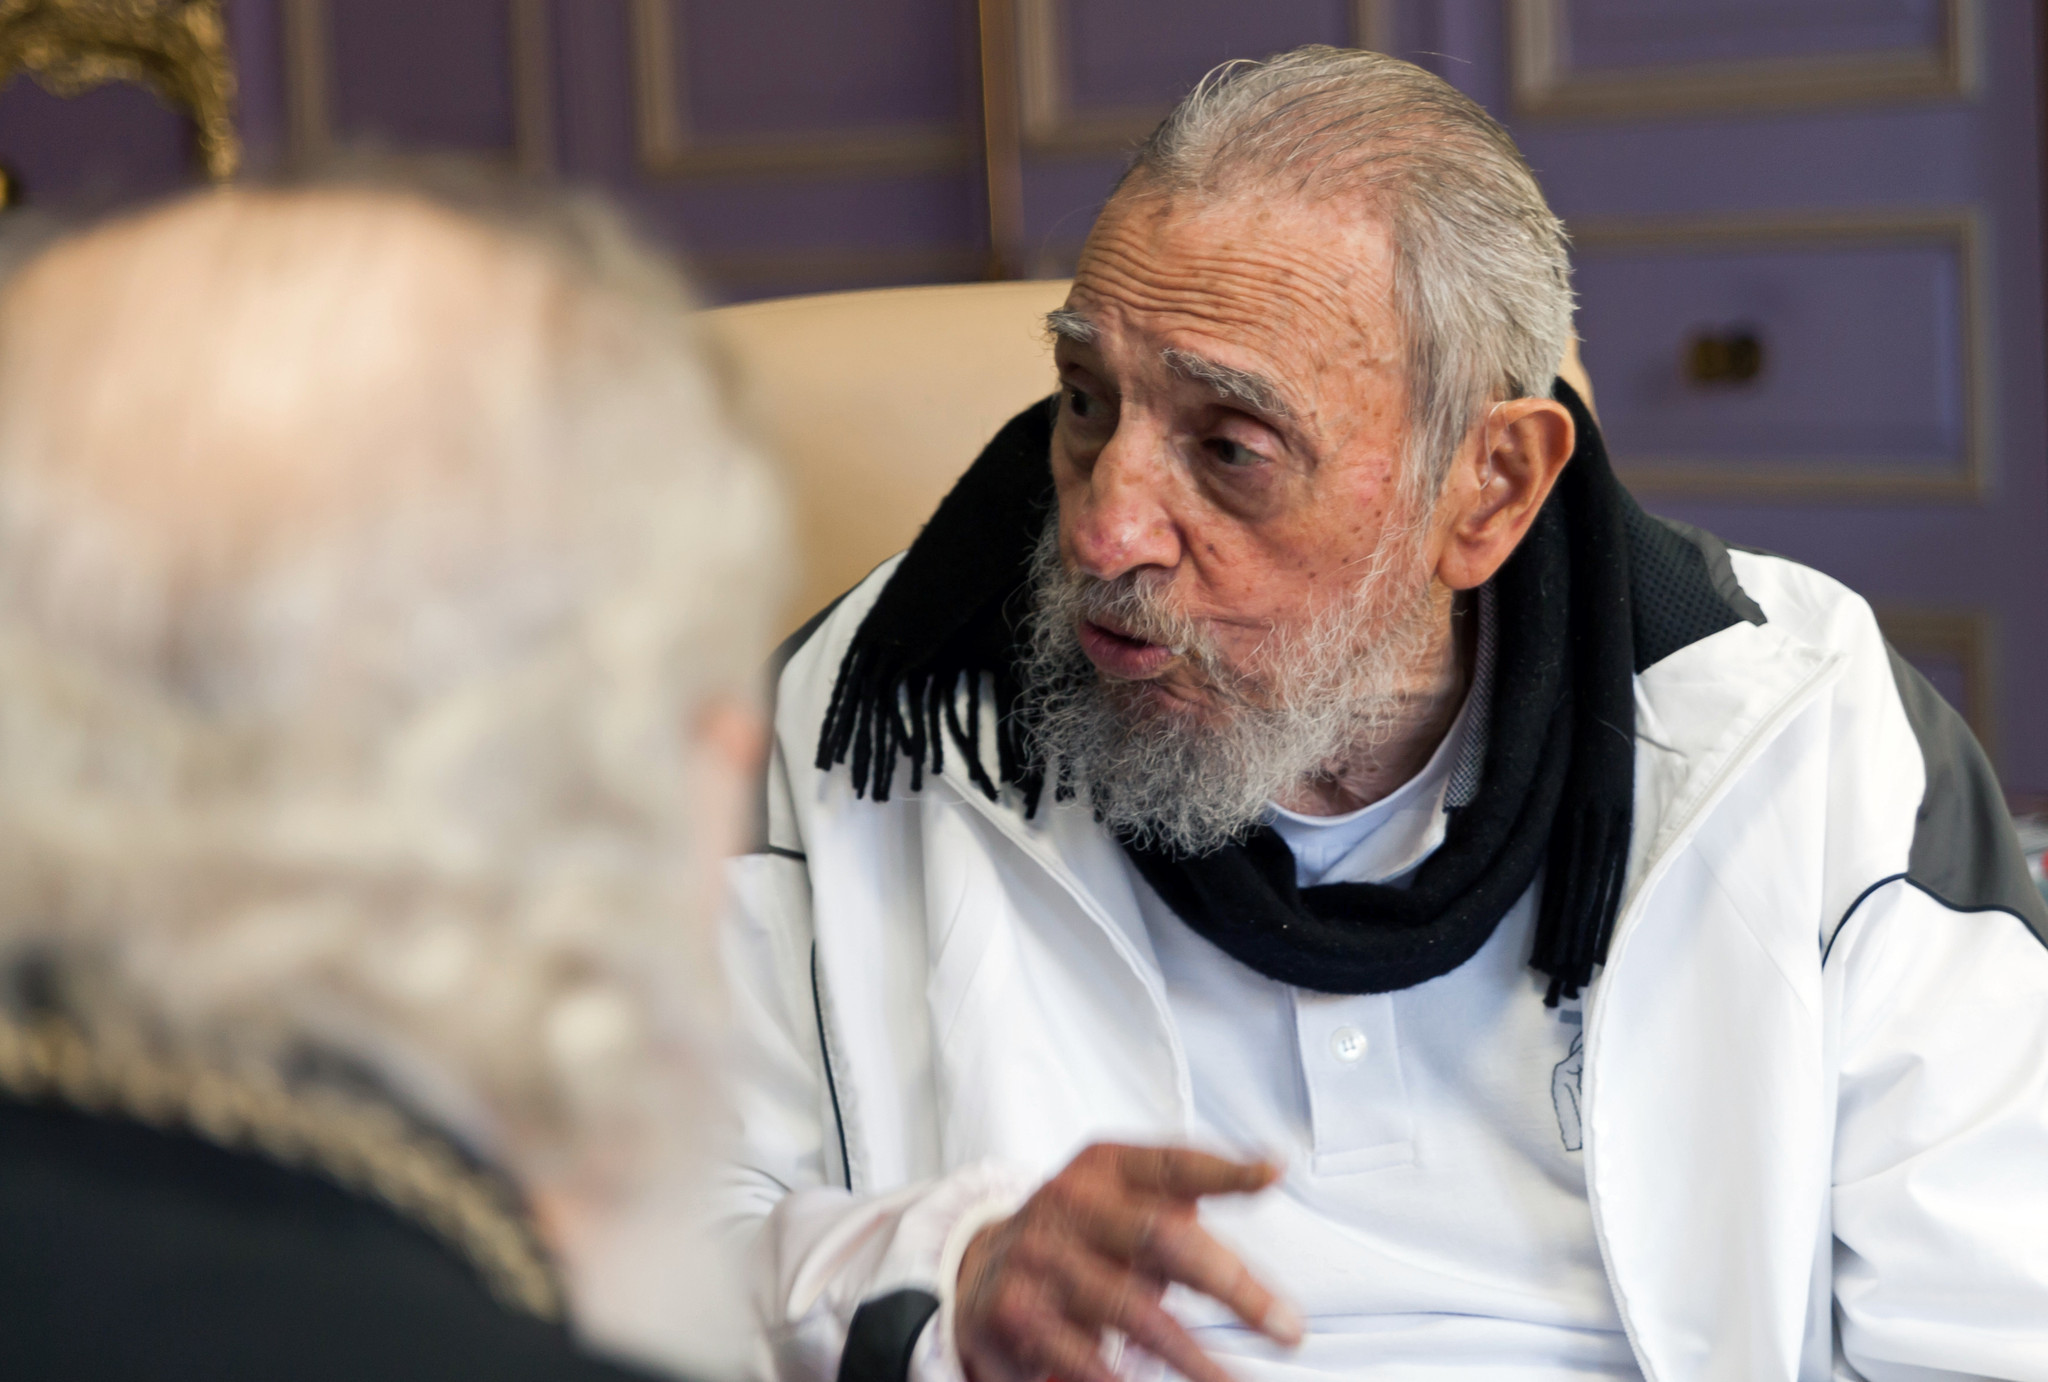 fidel castro 500 word essay Read this essay on fidel castro come browse our large digital warehouse of free sample essays get the knowledge you need in order to pass your classes and more.